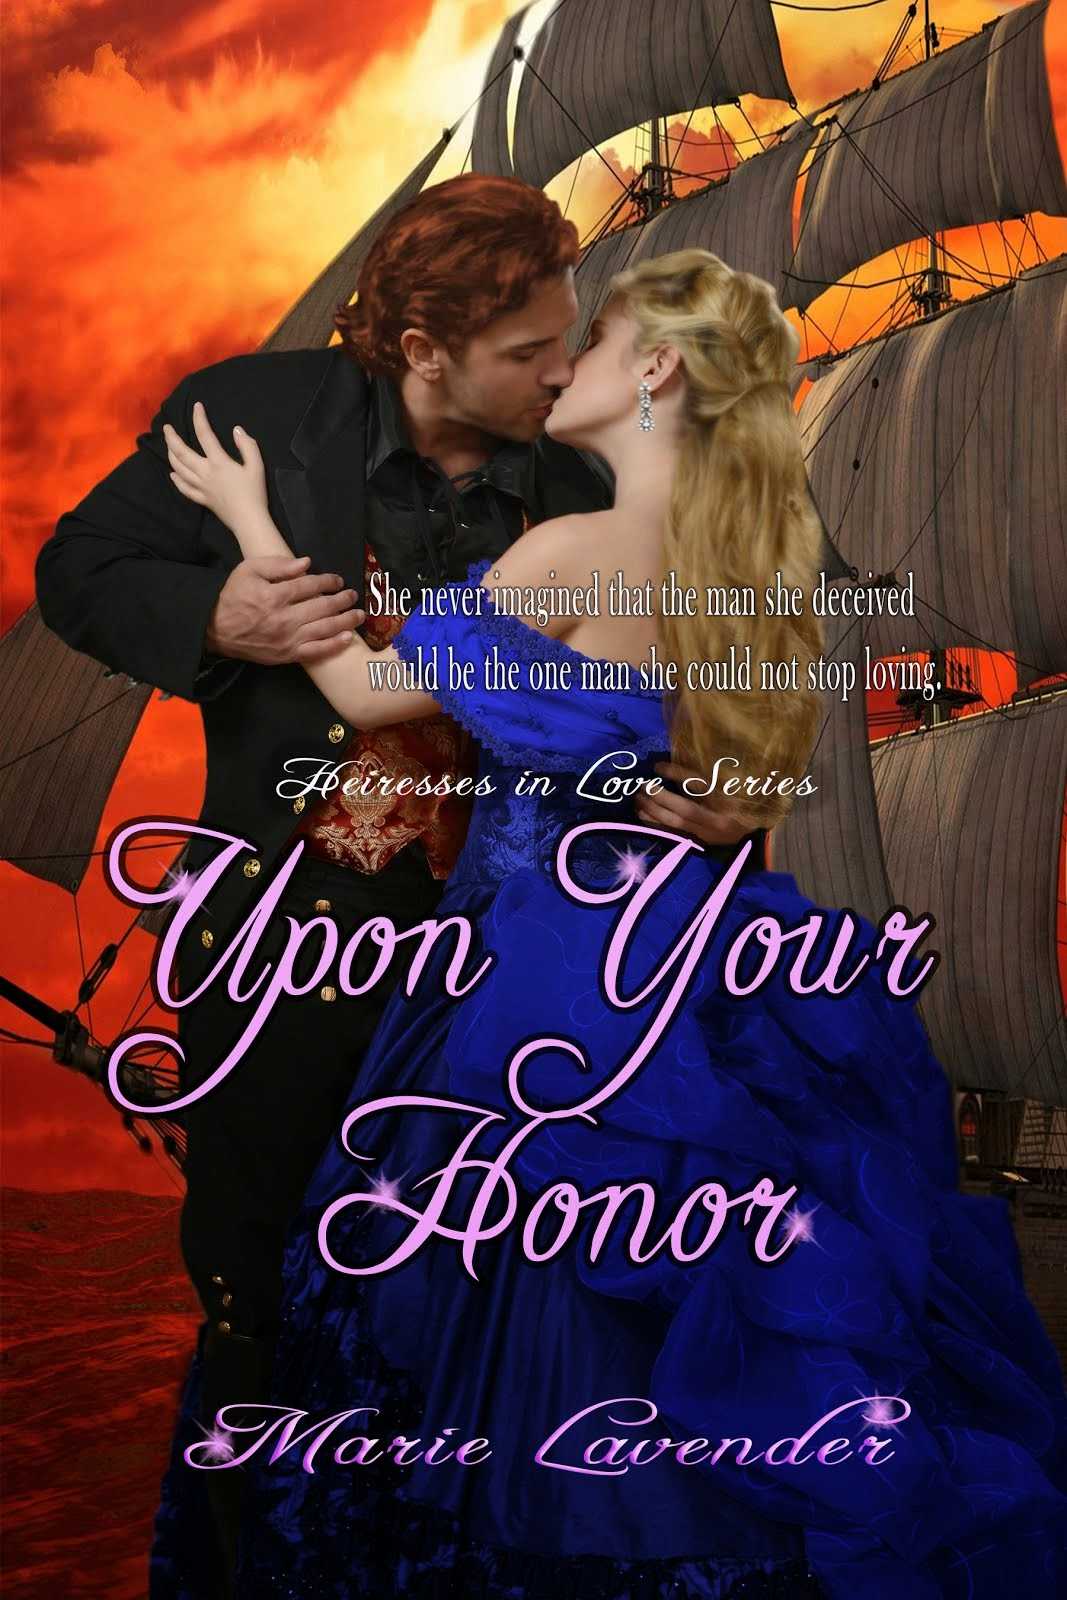 http://solsticepublishing.com/upon-your-honor/